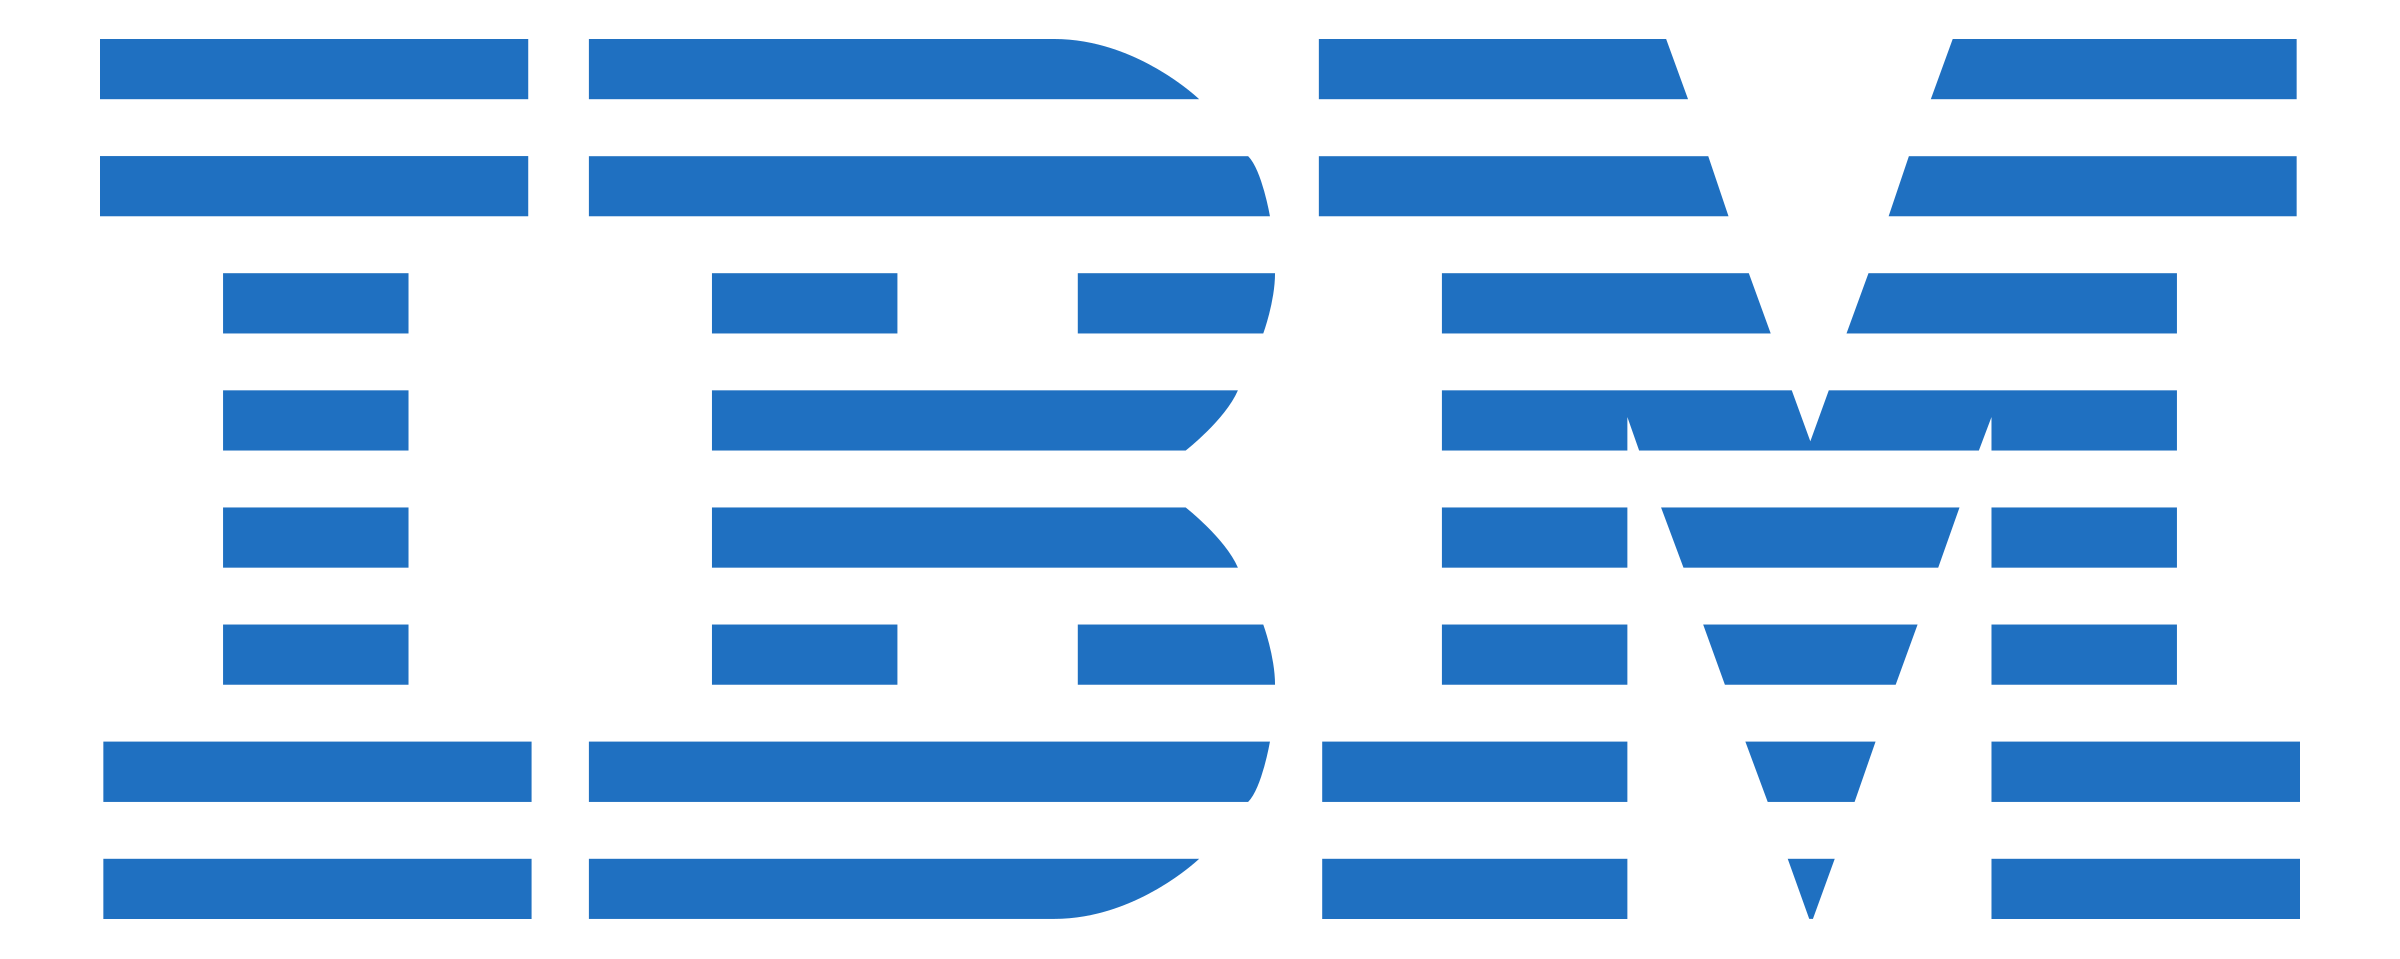 IBM Logo PNG Transparent & SVG Vector.